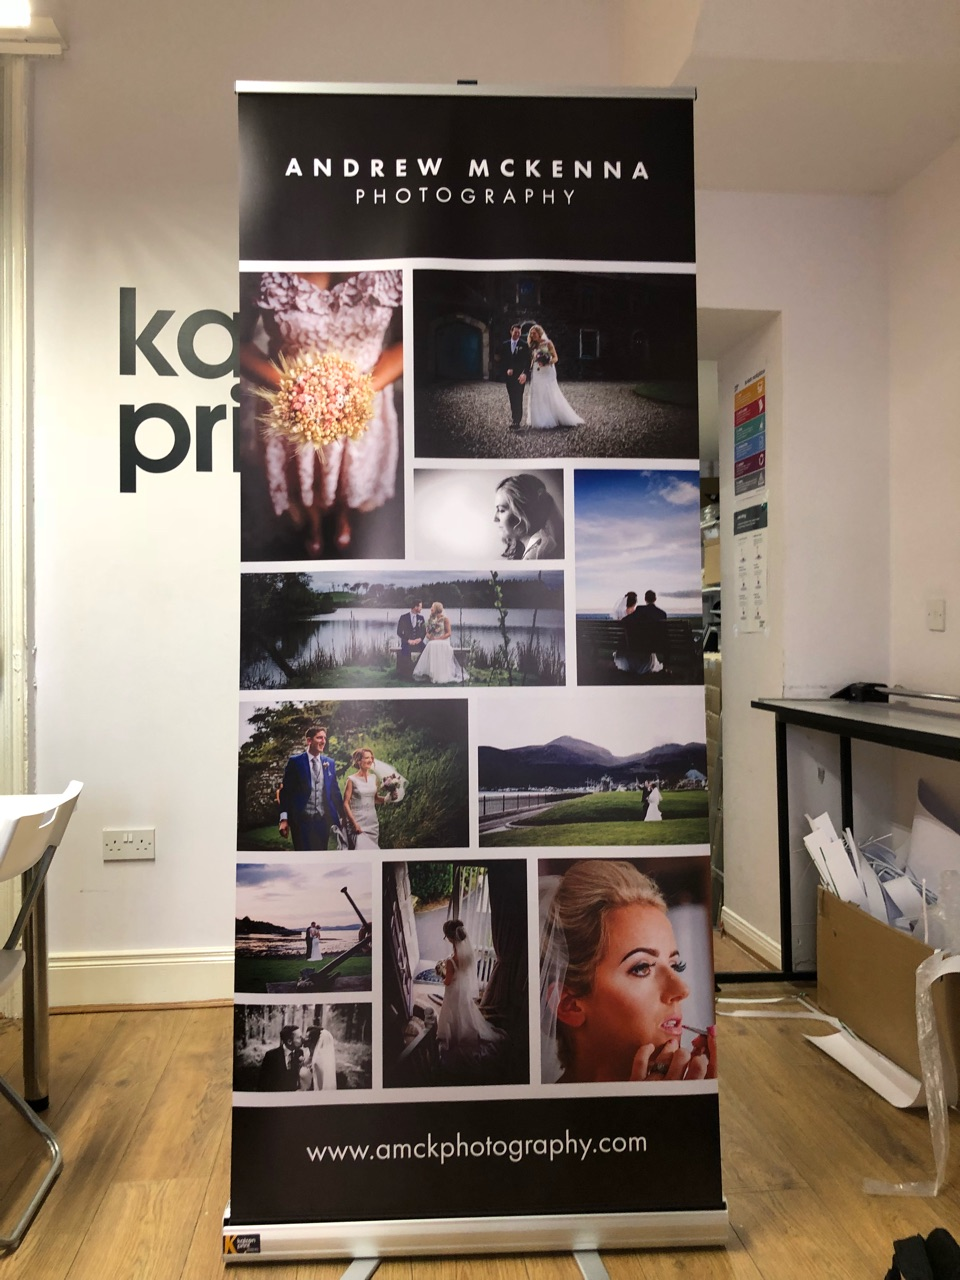 Andrew McKenna Roll Up Banner - Roll Up Banner Printing - Belfast Printing - Kaizen Print